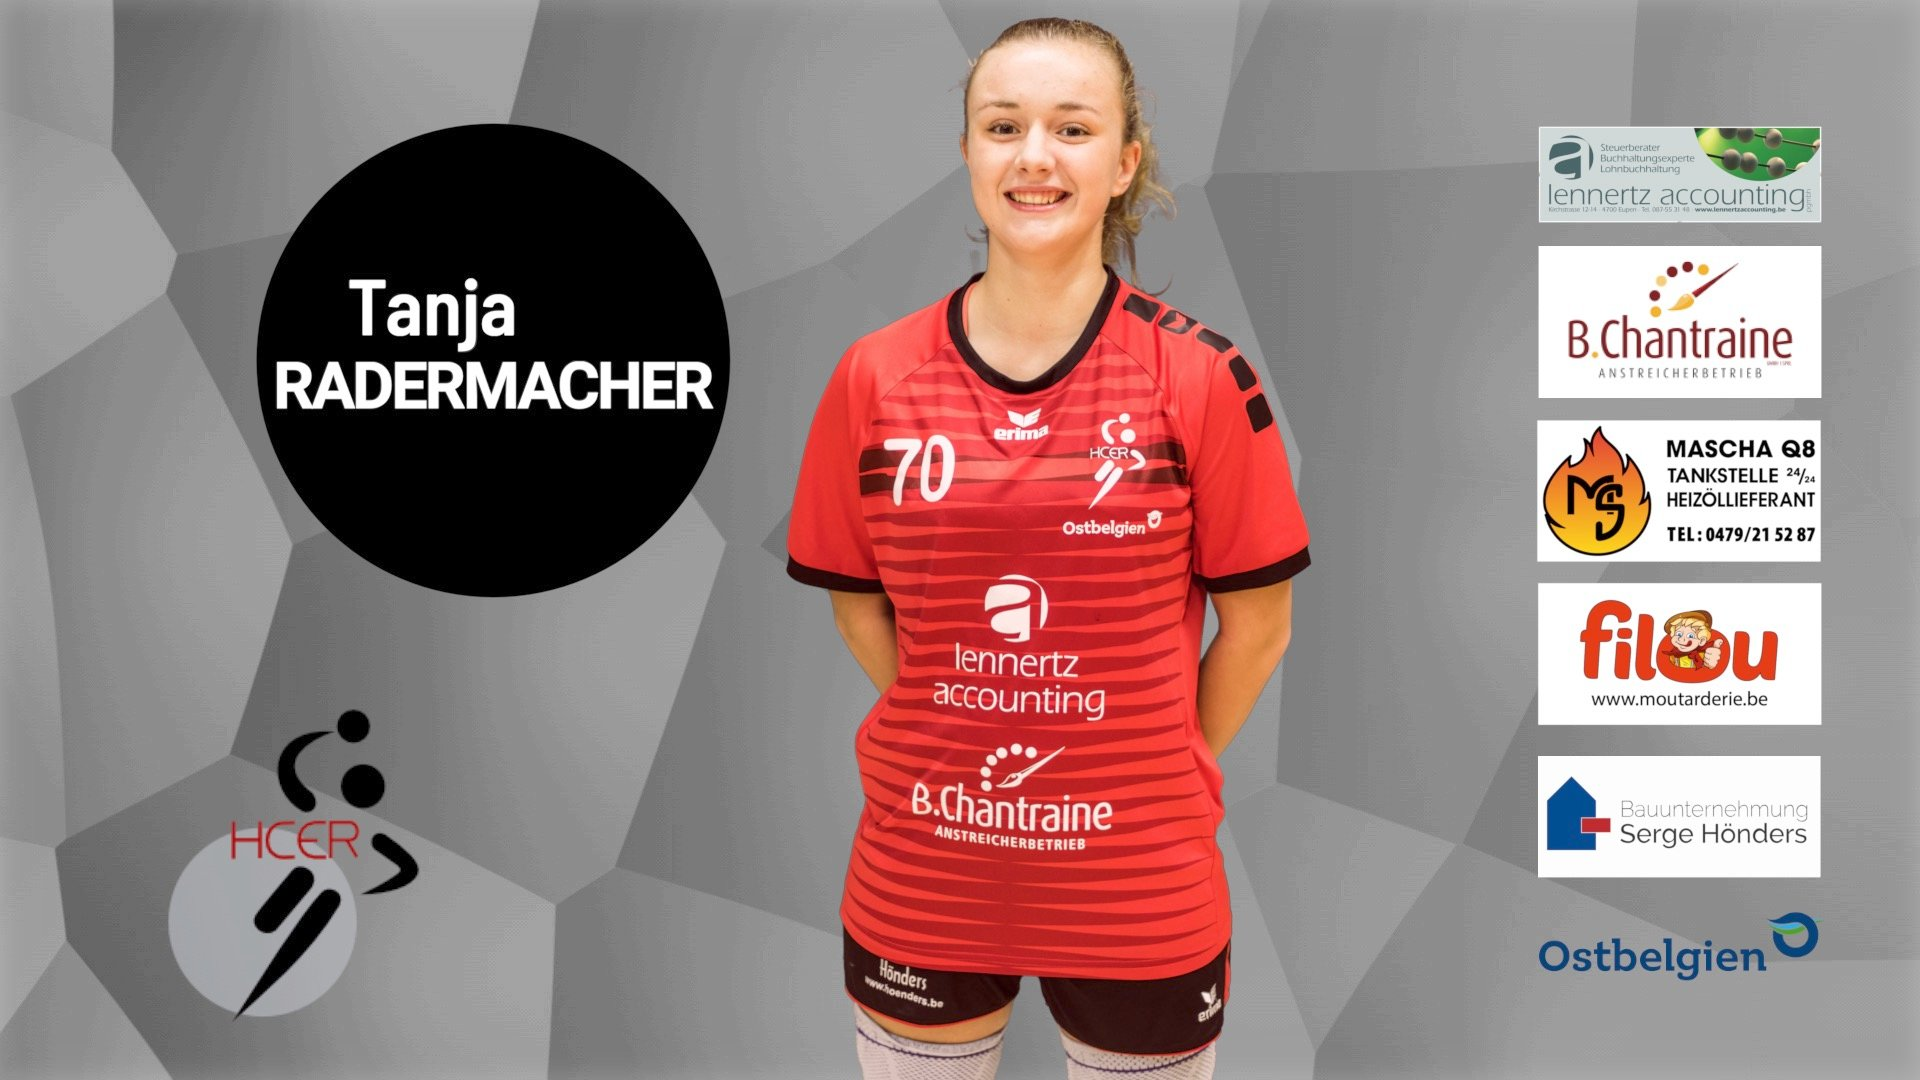 #70 Tanja Radermacher